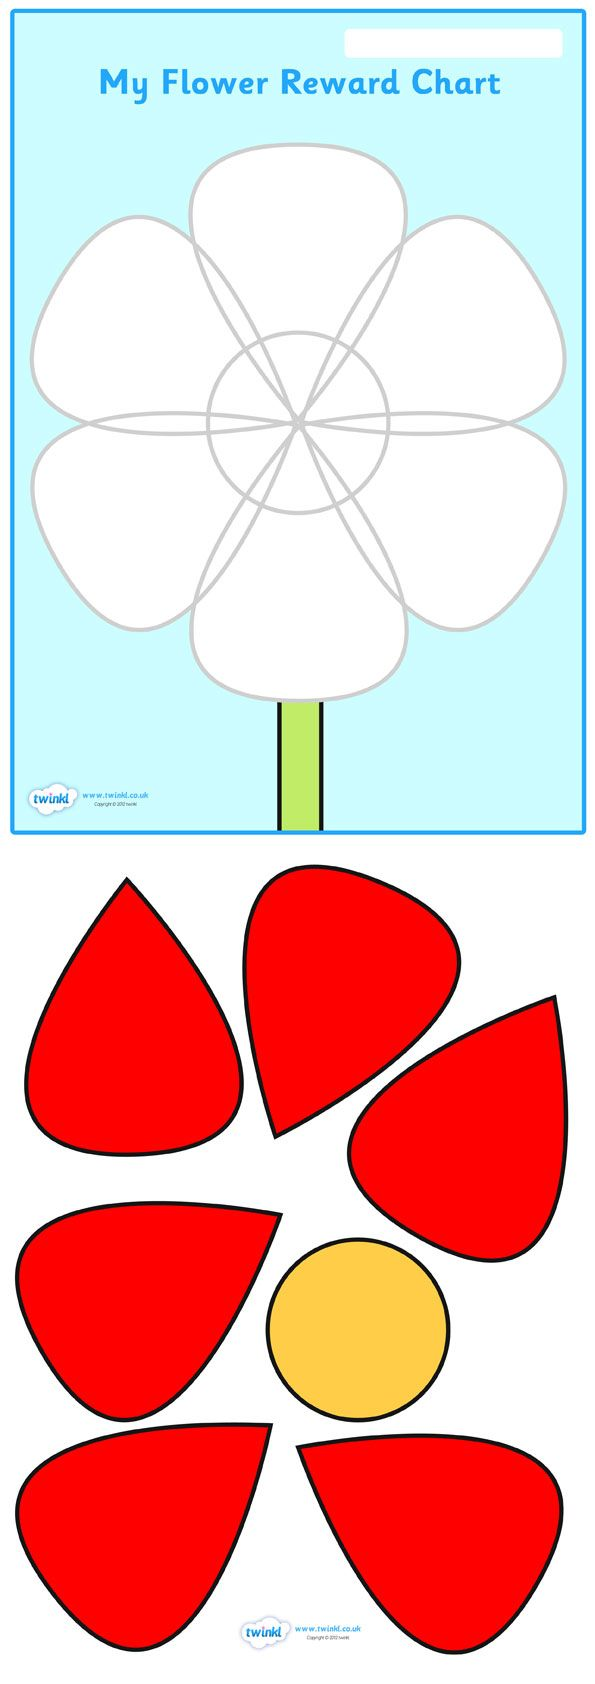 Twinkl Resources >> Flower Petal Reward Chart  >> Thousands of printable primary teaching resources for EYFS, KS1, KS2 and beyond! flower reward chart, flower petals reward chart, complete the flower, reward chart, chart, complete,